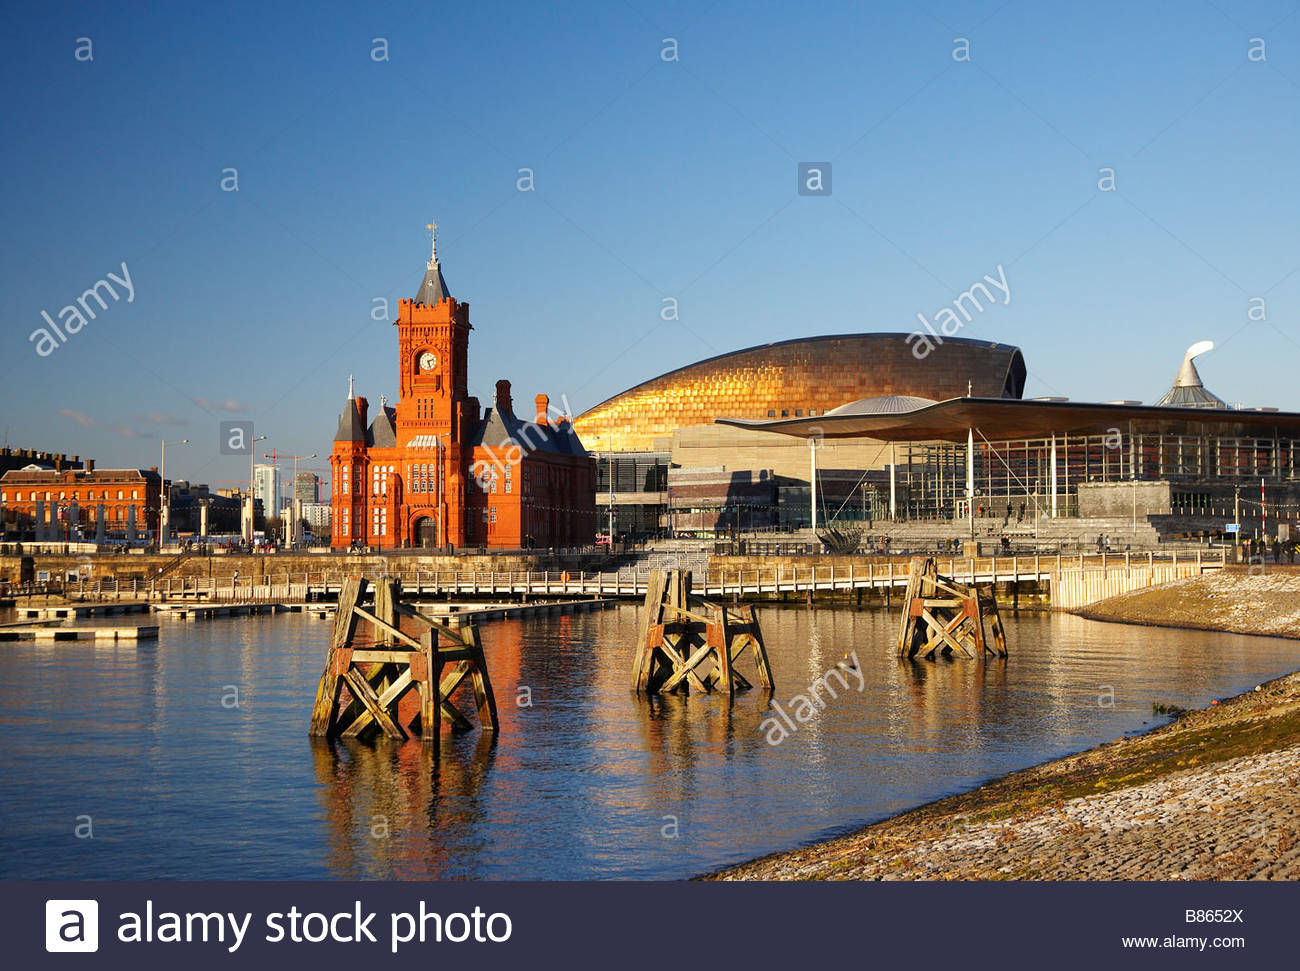 Pierhead South Wales, The Welsh Assembly Building the Senedd the Pierhead Building and ...